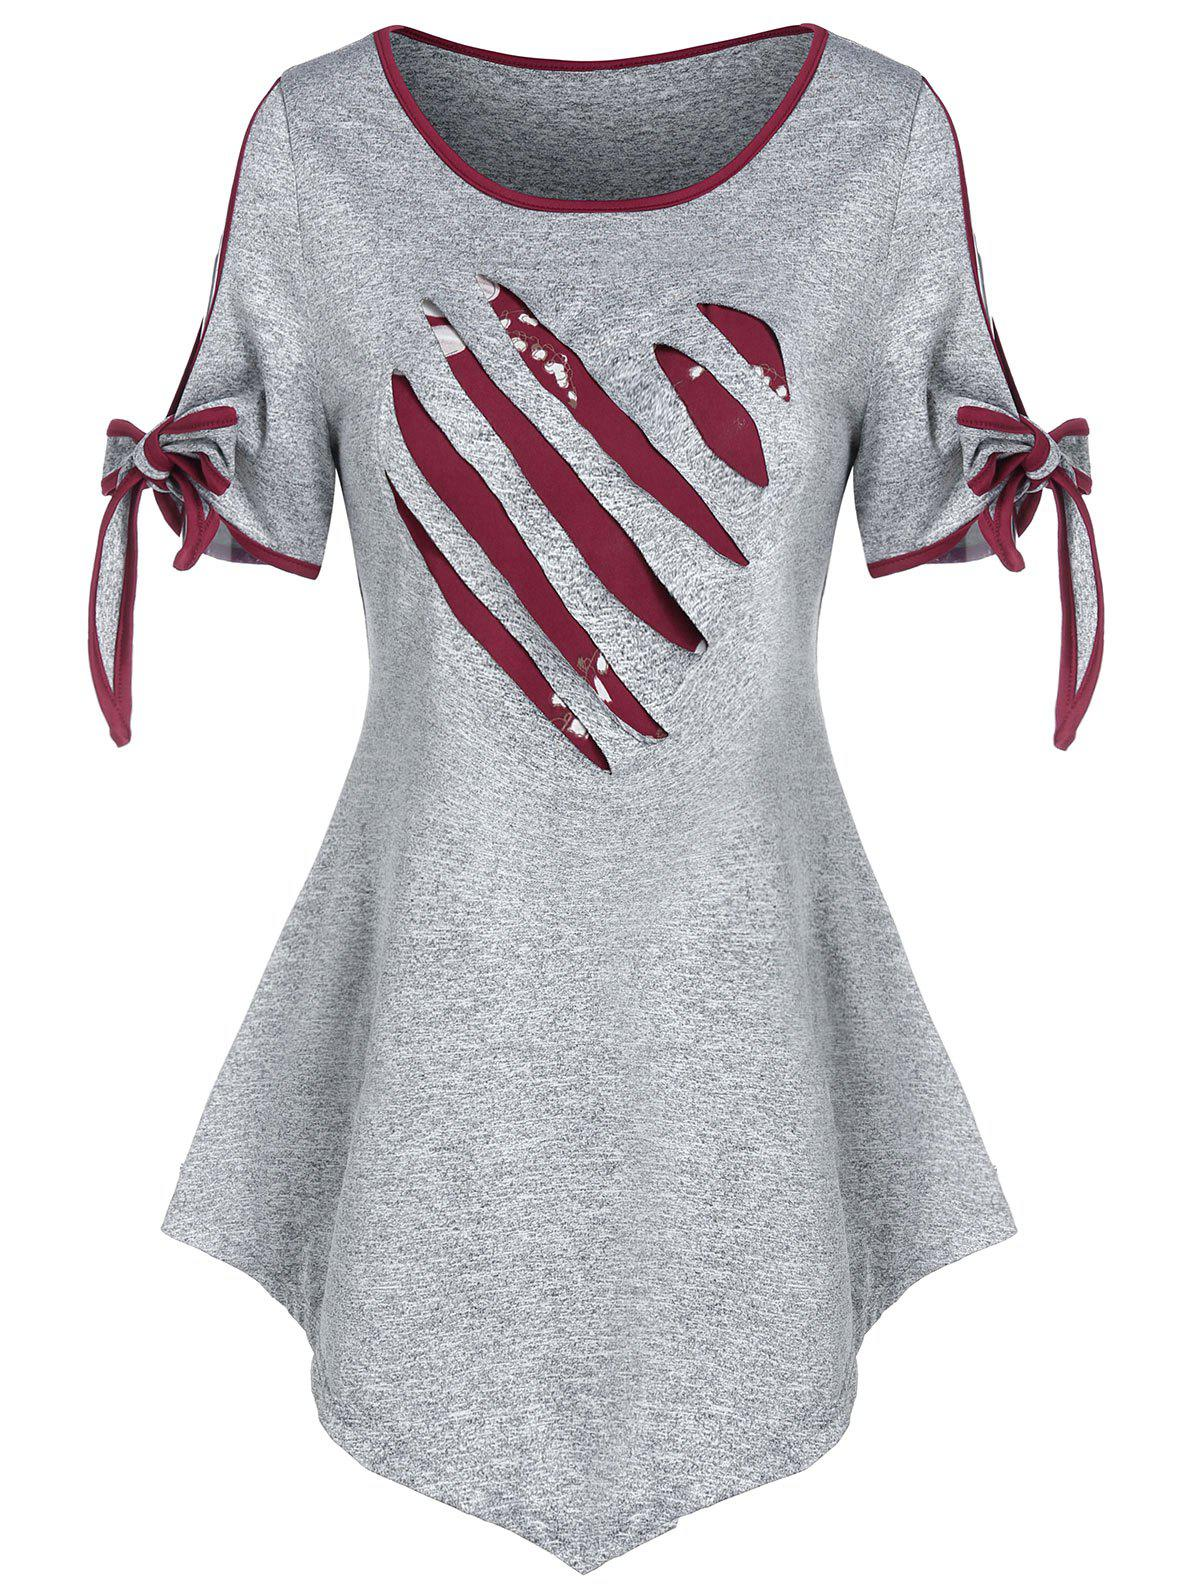 Valentine Heart Pattern Ripped Bowknot Marled T-shirt фото